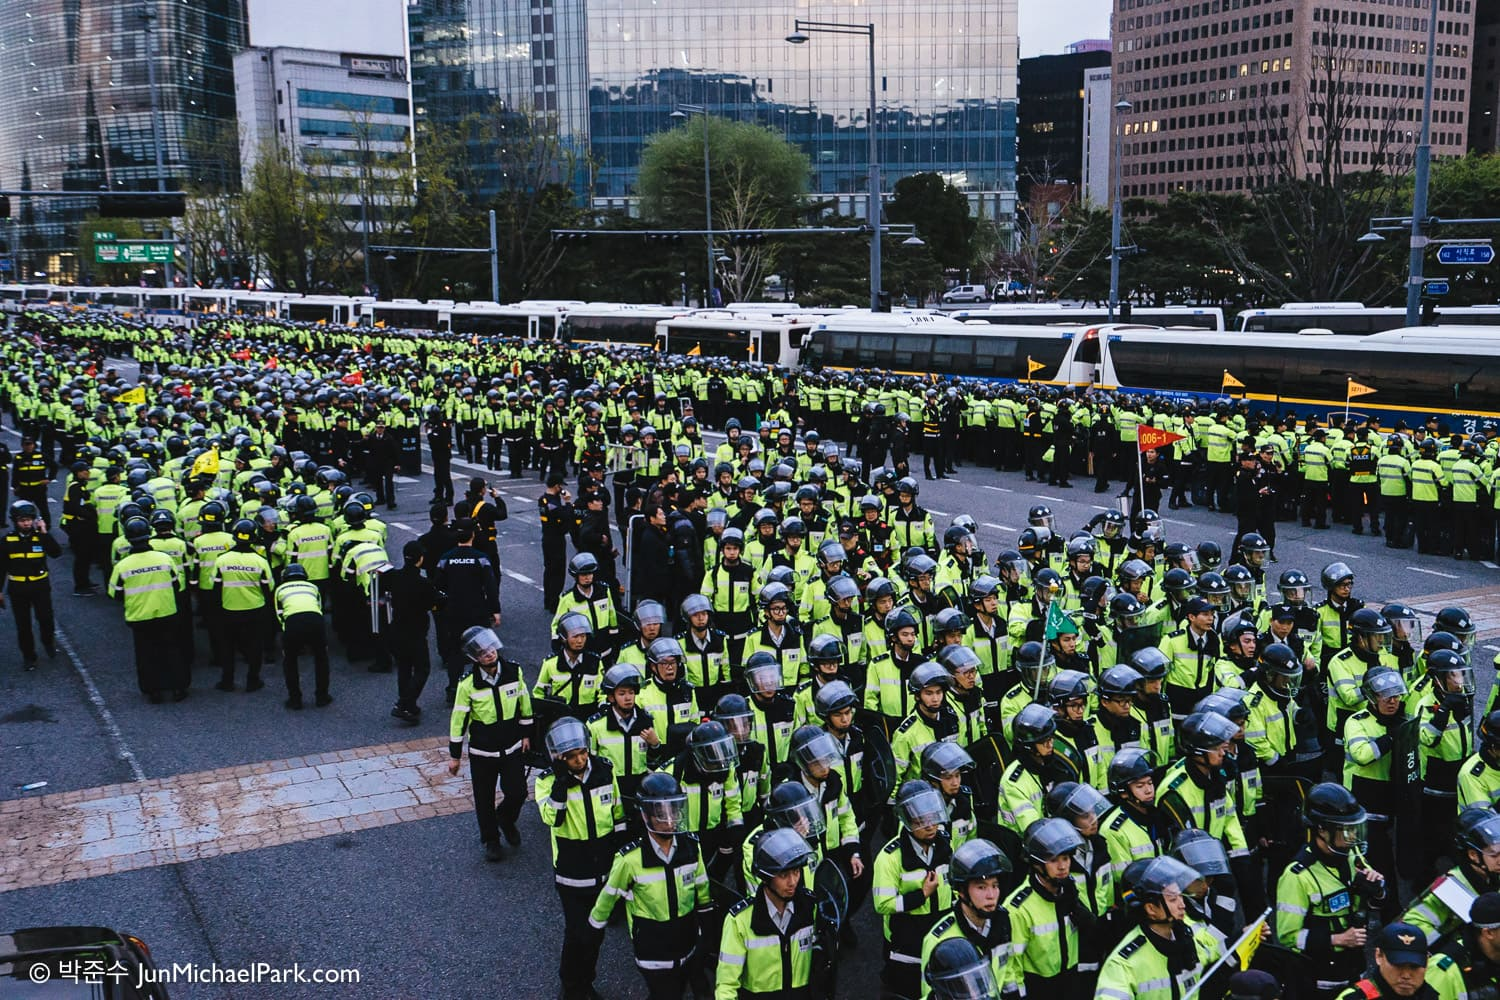 Police forces in riot gear are dispatched to suppress a demonstration in downtown Seoul around the one year anniversary of the Sewol ferry sinking. The Seoul Metropolitan Police Agency later confirmed that 20,000 police forces were deployed. April 18, 2015.